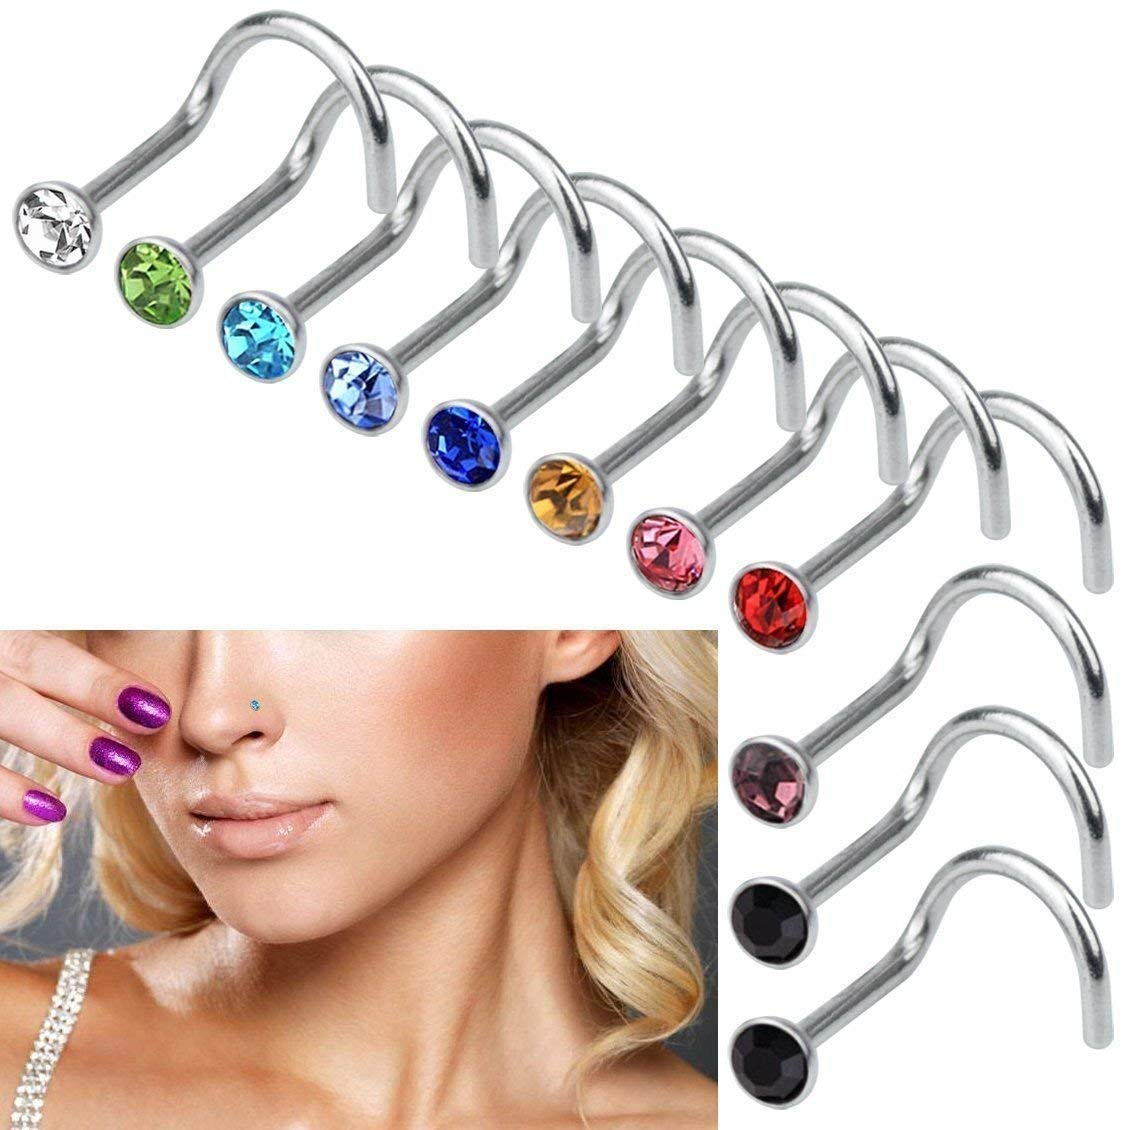 60pcs Tiny Surgical Steel Nose Studs Ring Rhinestone Body Piercing Jewellery CO